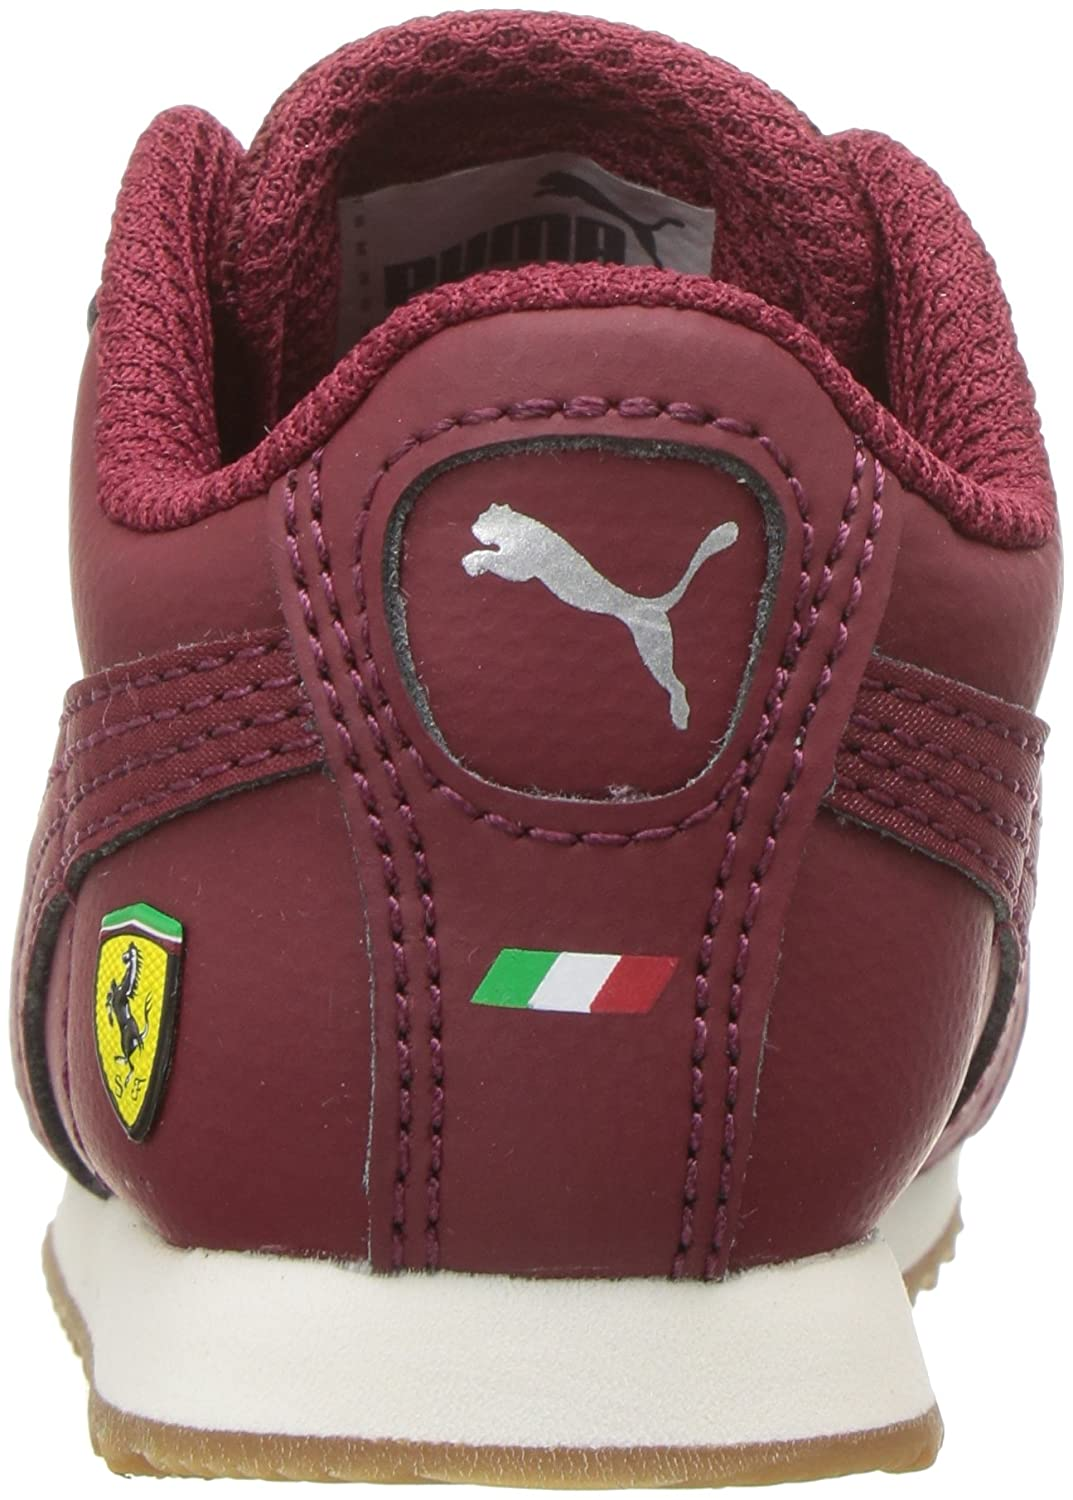 Puma Unisex-Kids Ferrari Roma Turnschuhe, Pomegranate-Pomegranate, 3 3 3 M US Little Kid e2786d